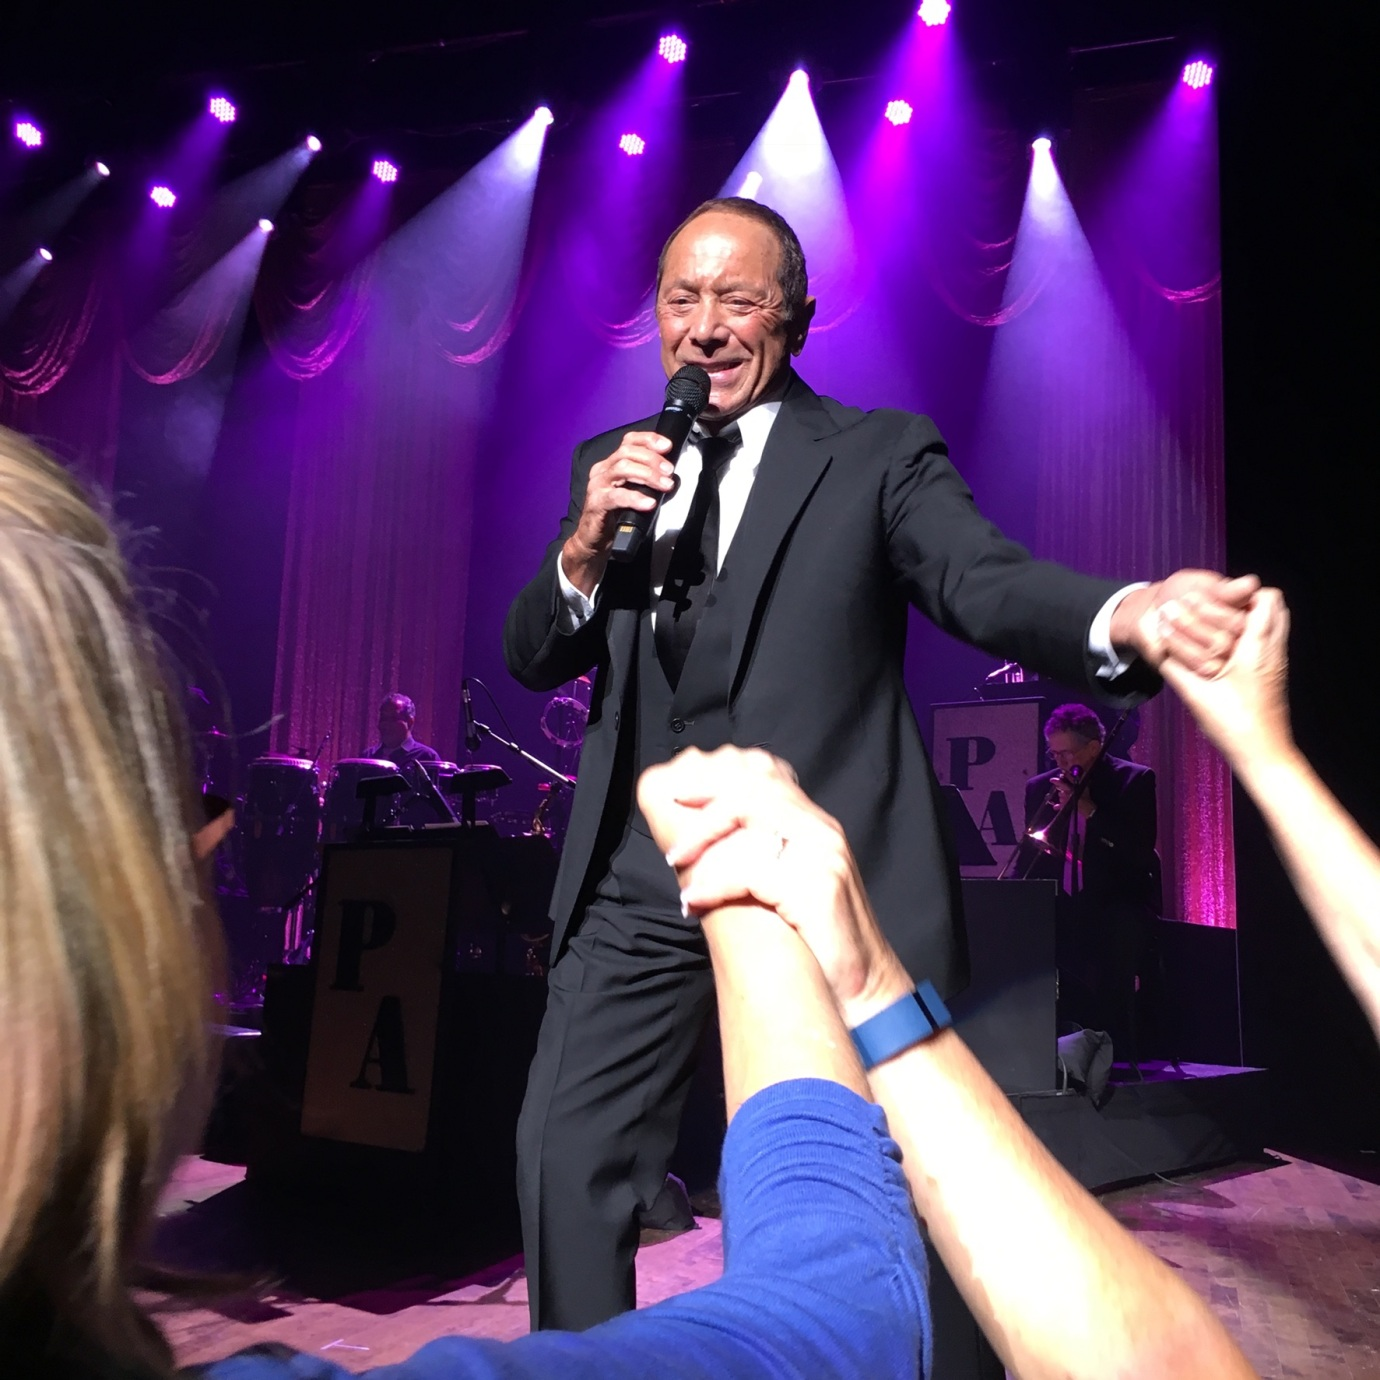 Paul Anka at the Palace Theater in Columbus, Ohio.